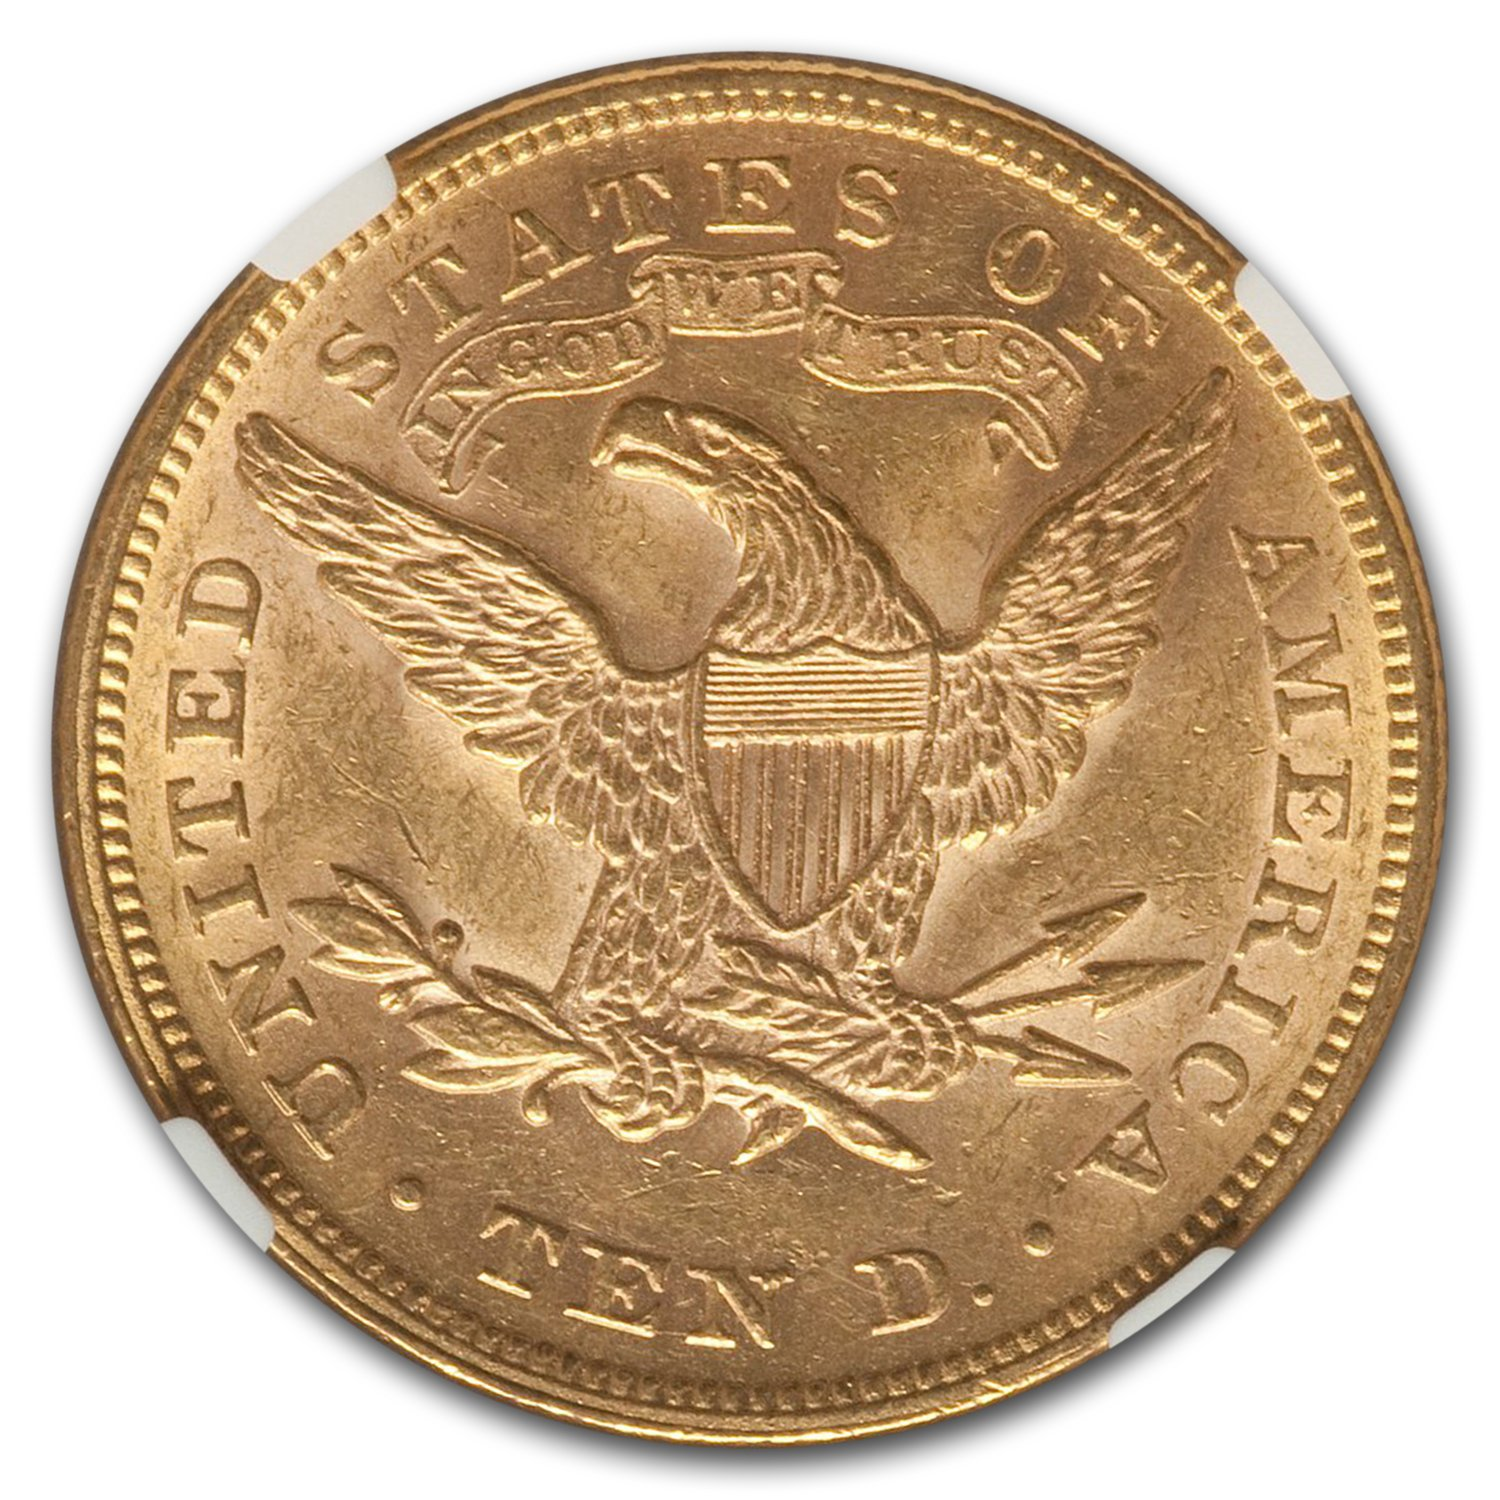 1878 $10 Liberty Gold Eagle - MS-61 NGC